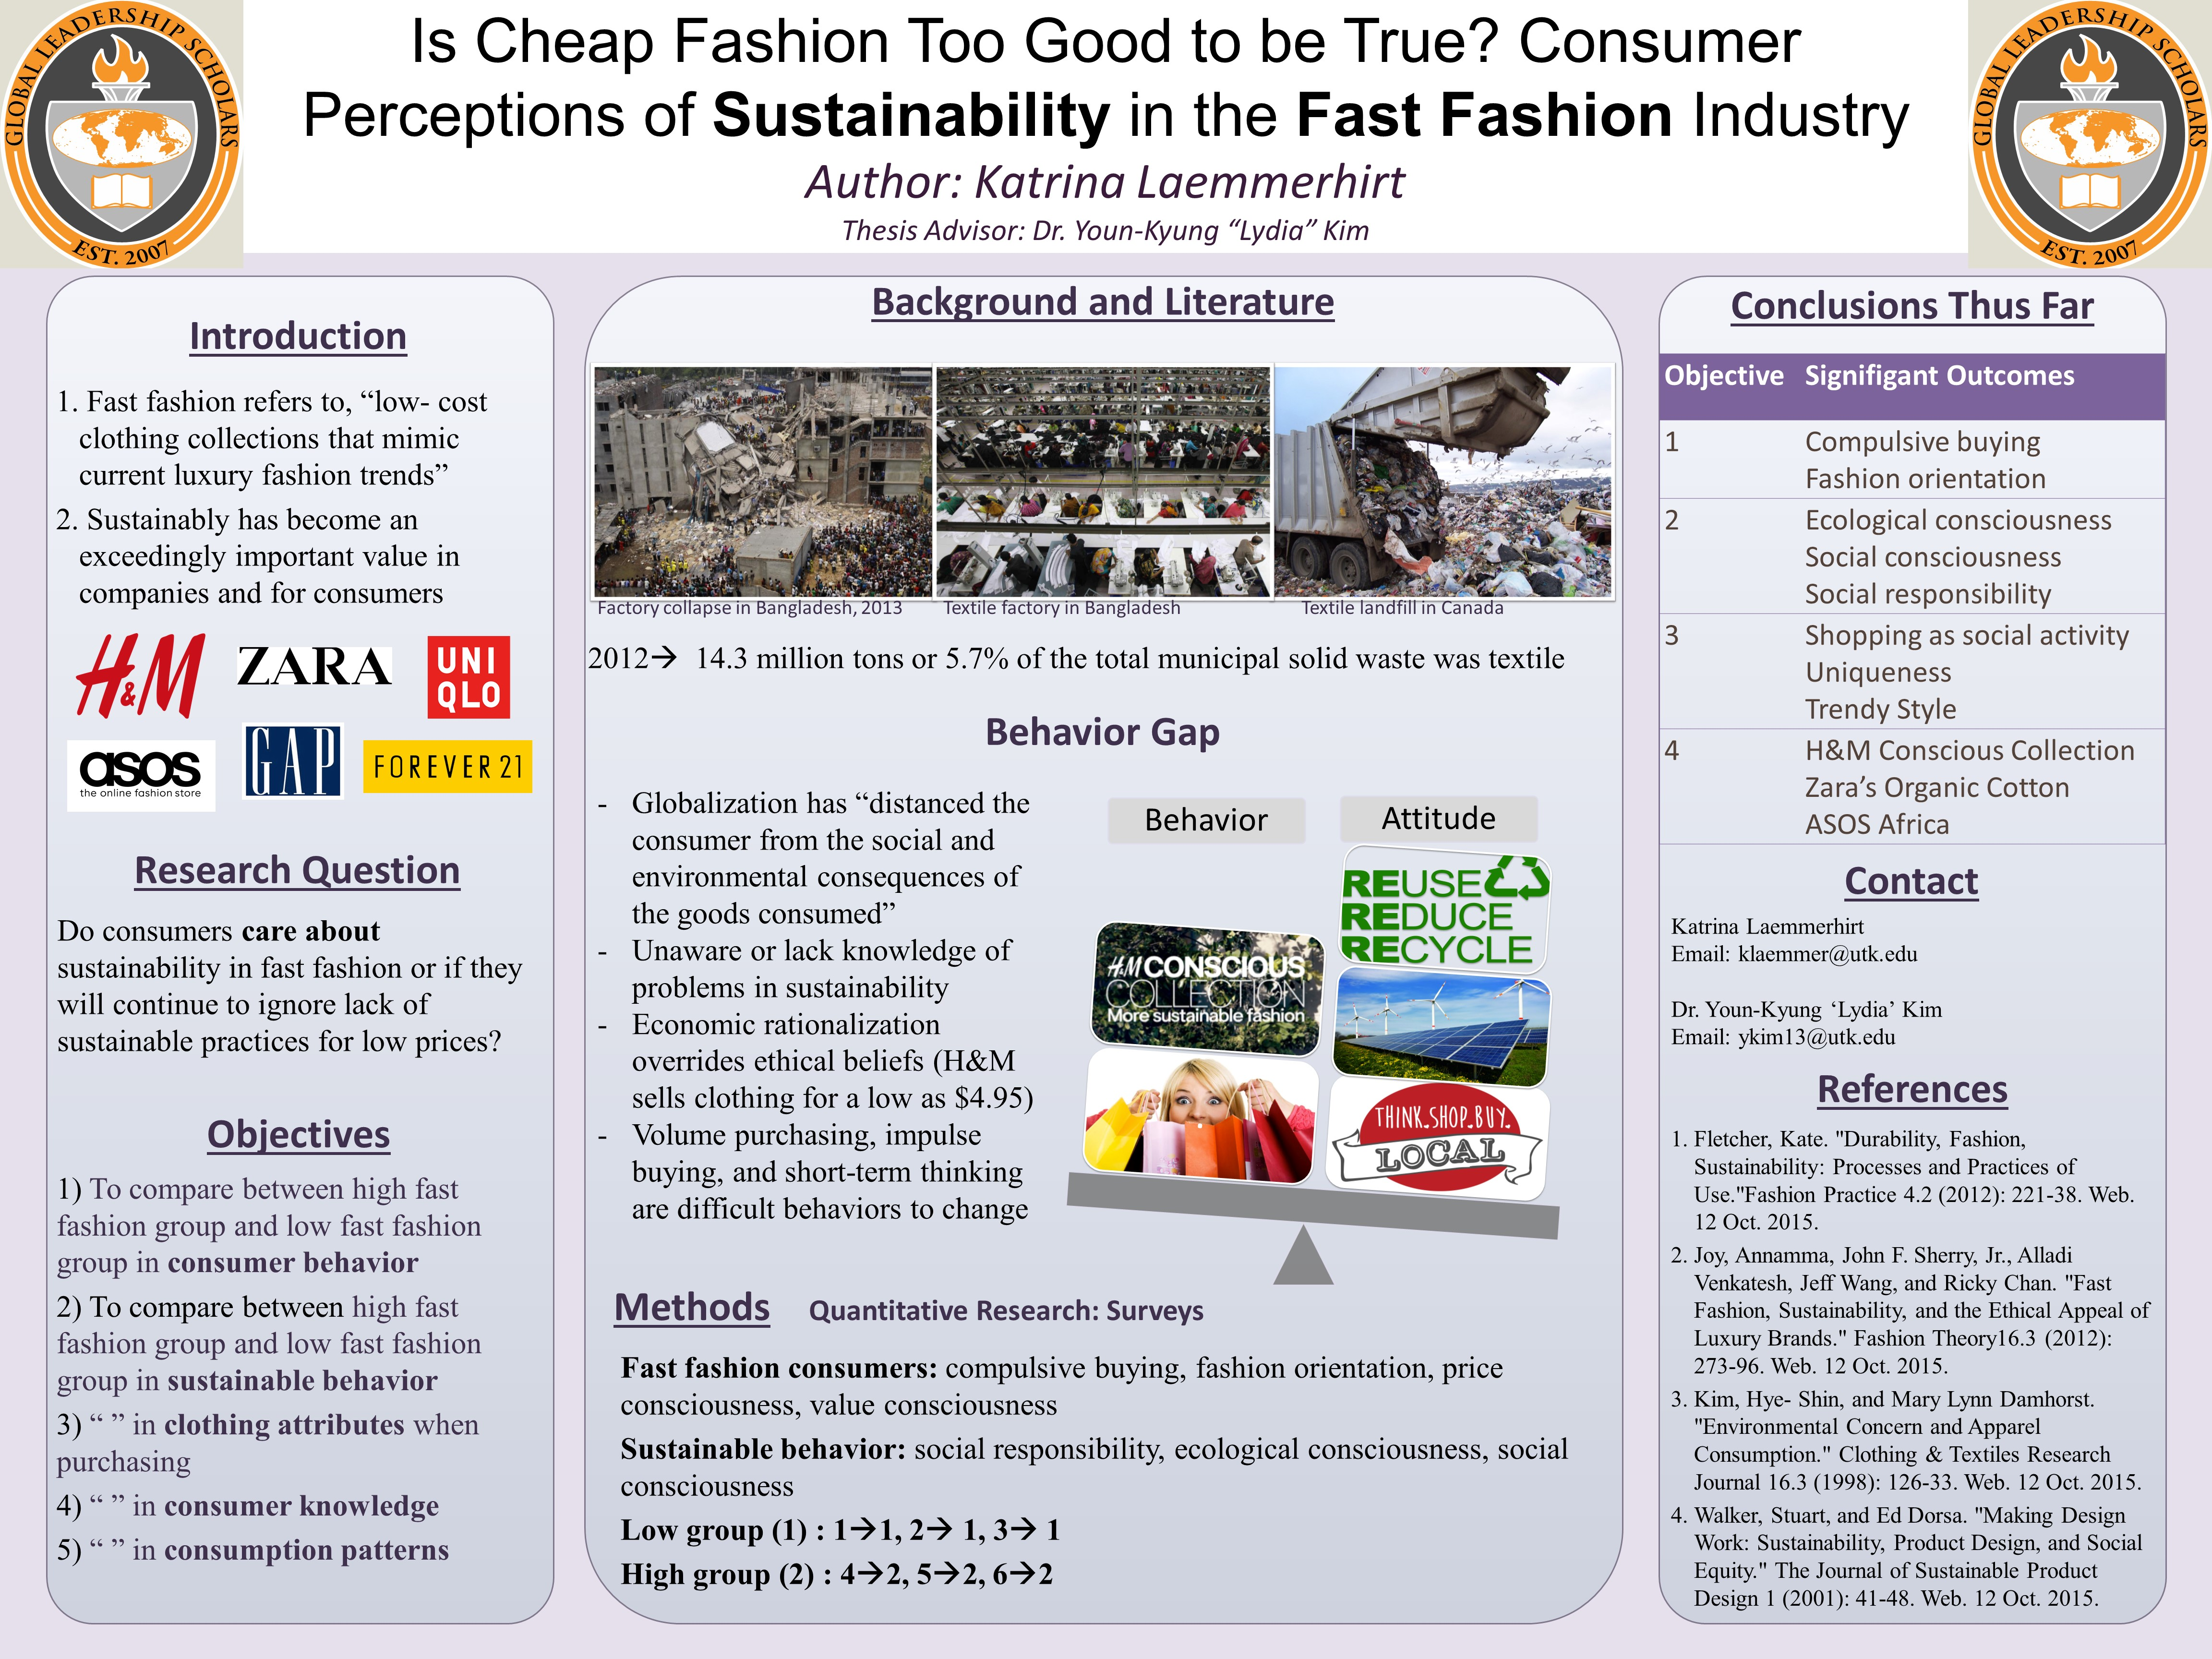 Is Cheap Fashion Too Good to be True? Consumer Perceptions of Sustainability in the Fast Fashion Industry